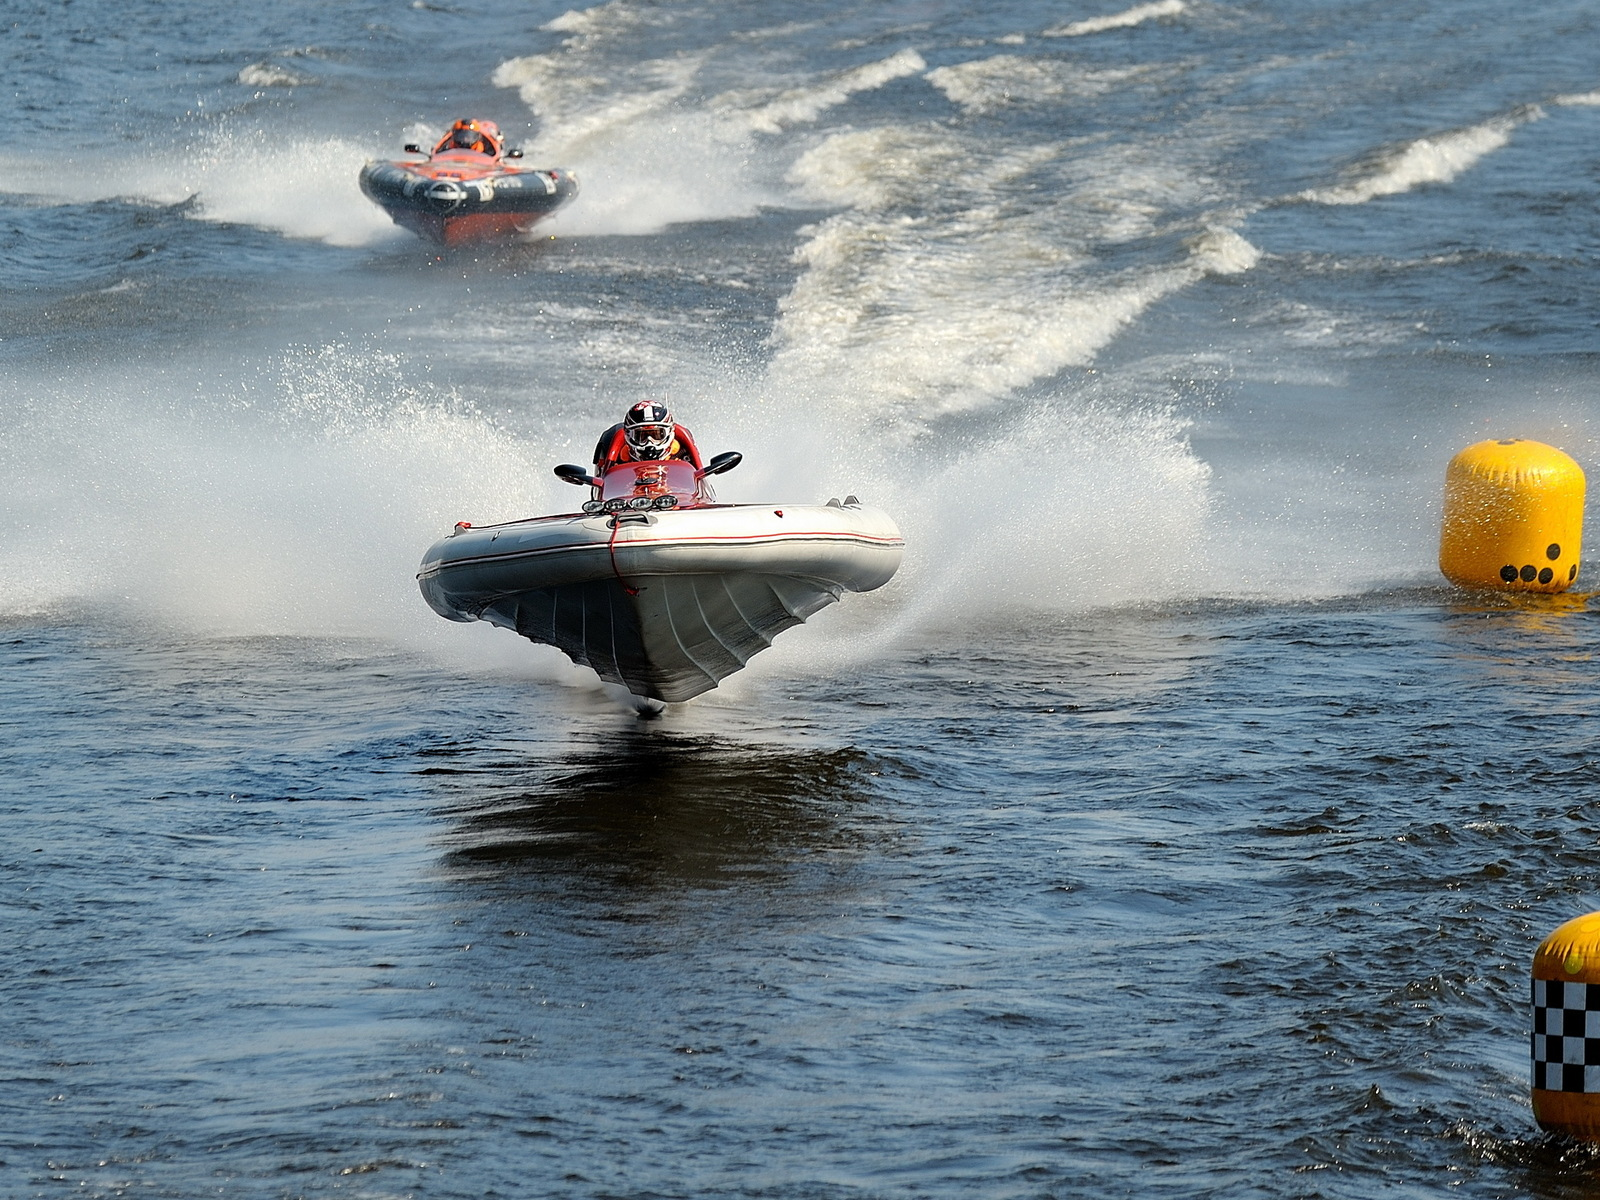 Racing on boats